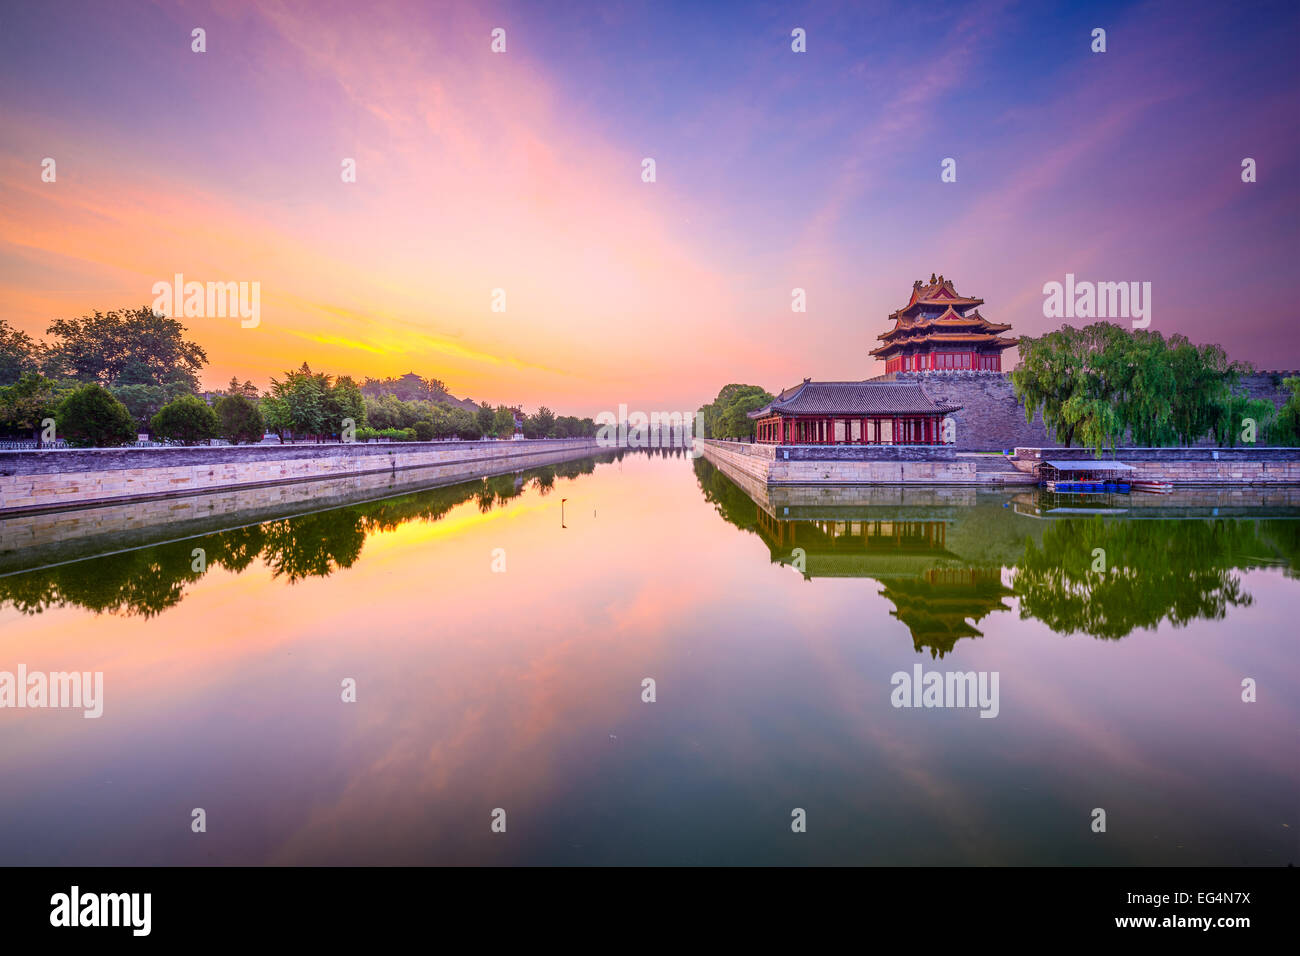 Beijing, China forbidden city outer moat at dawn. - Stock Image